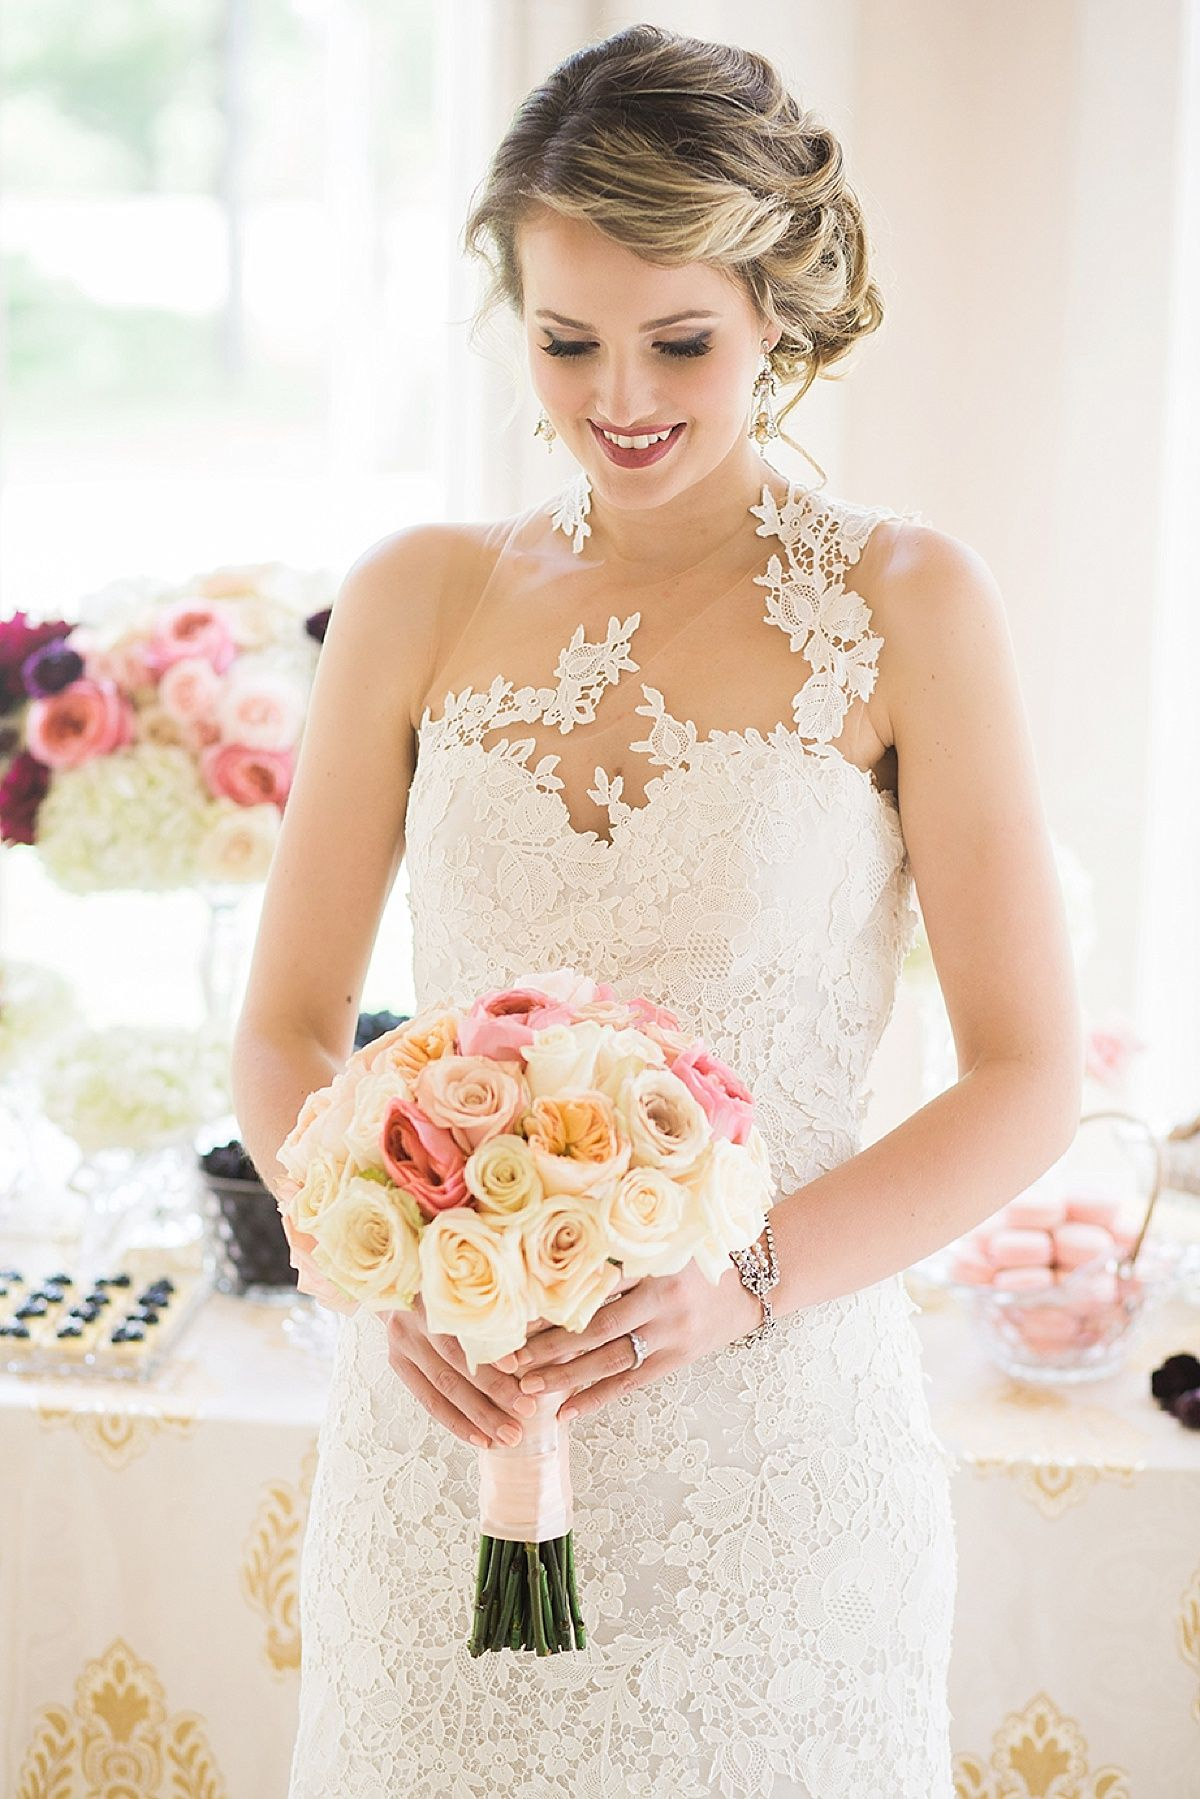 Love this wedding dress? Check out the I Do! Wedding Soiree on 10/18 at the Four Seasons Hotel Houston and find your perfect wedding gown. $25 Pre-sale tickets: http://conta.cc/1L0vcYu  Photo: Akil Bennett Photography ~ Gown: Mia Bridal Couture ~ Decor: A Memorable Event ~ Makeup & Hair: Hayley & Co.